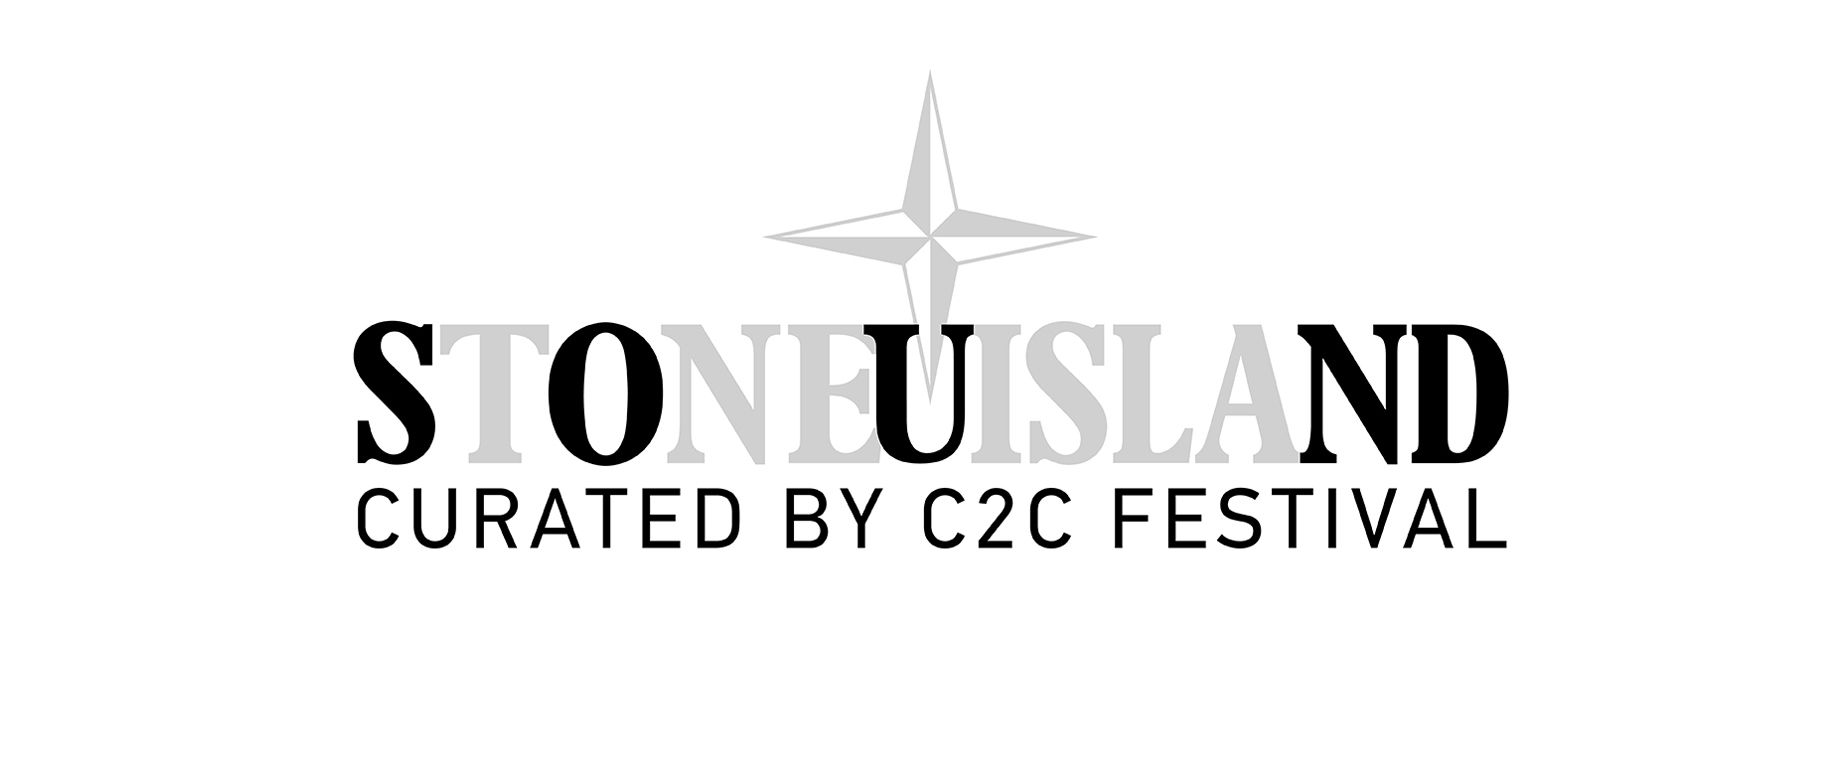 Stone Island logo. Text StoneUIsland. Curated by C2C Festival